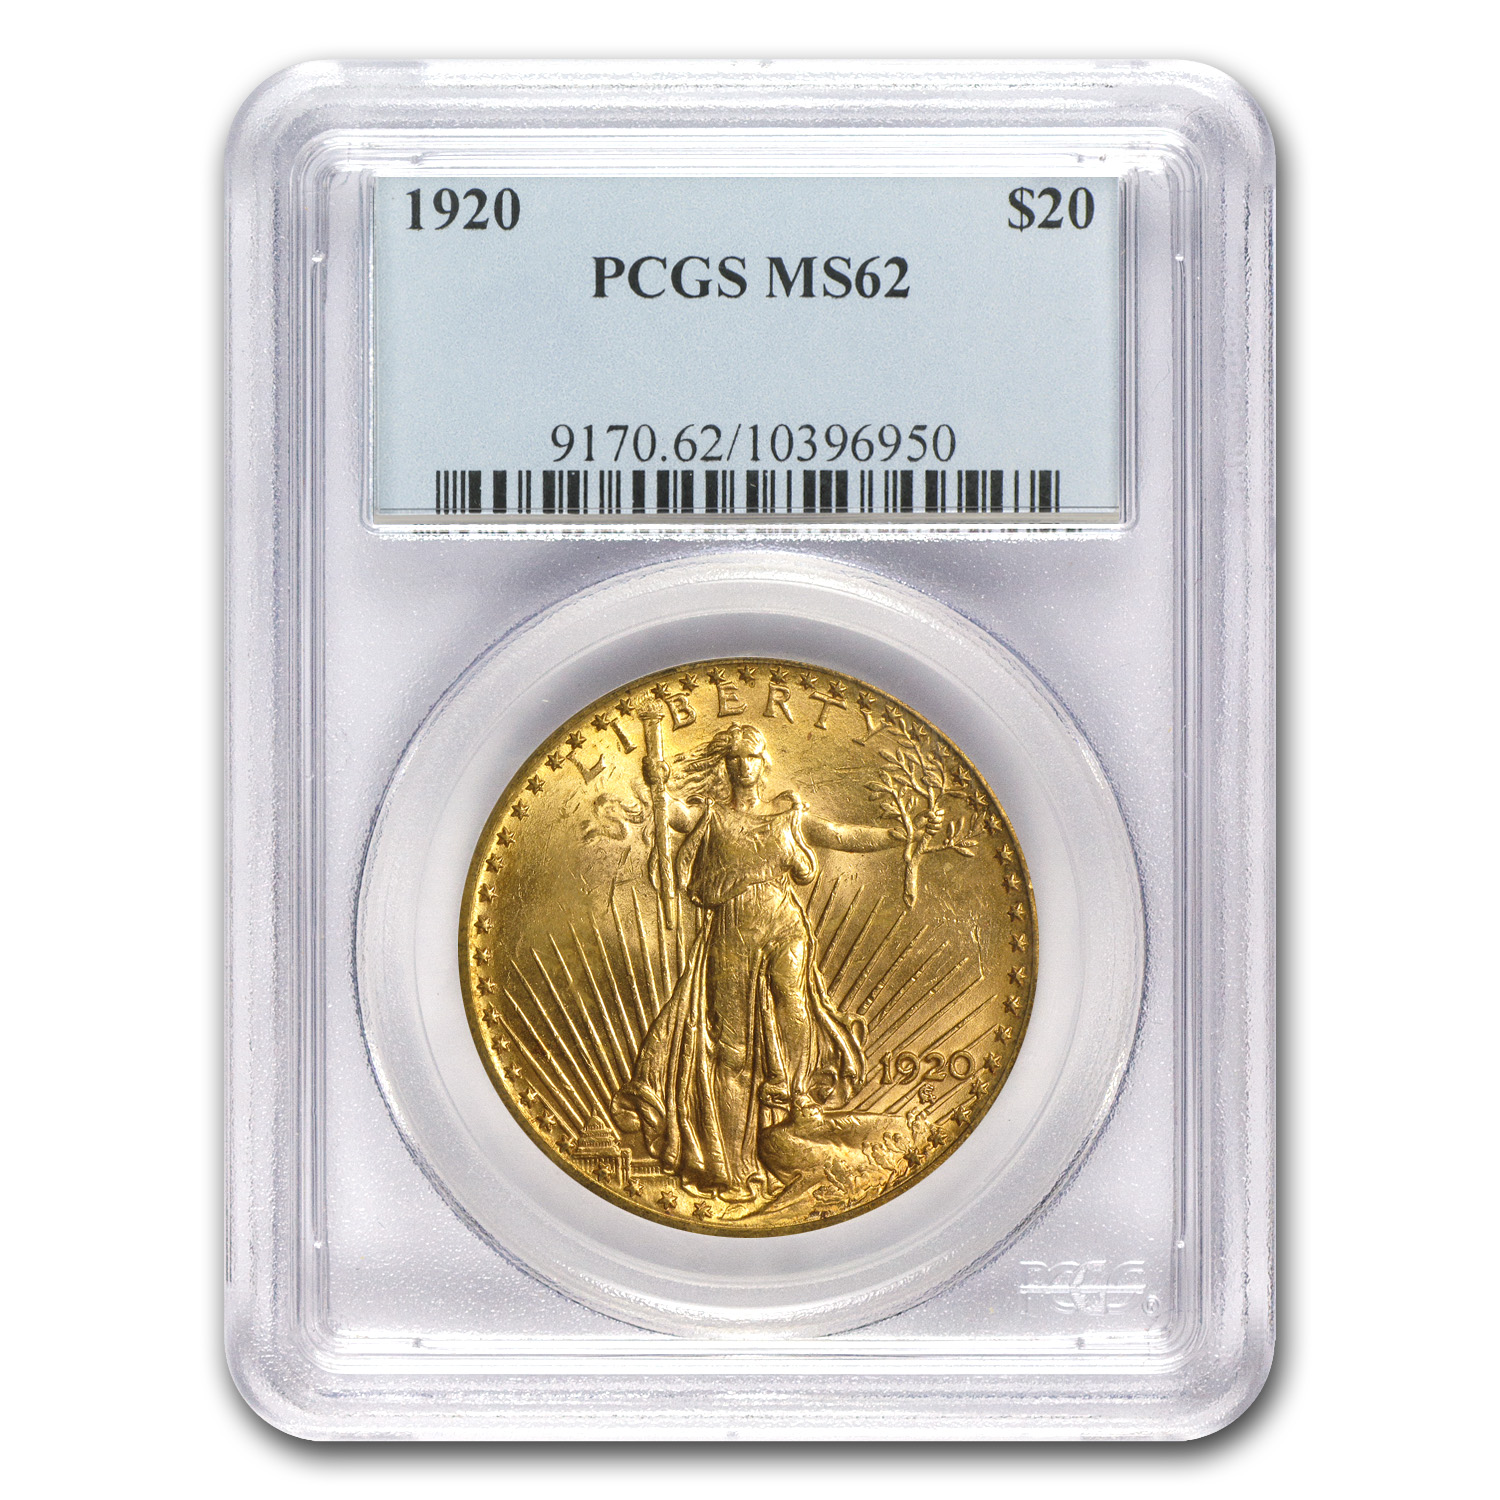 1920 $20 St. Gaudens Gold Double Eagle MS-62 PCGS